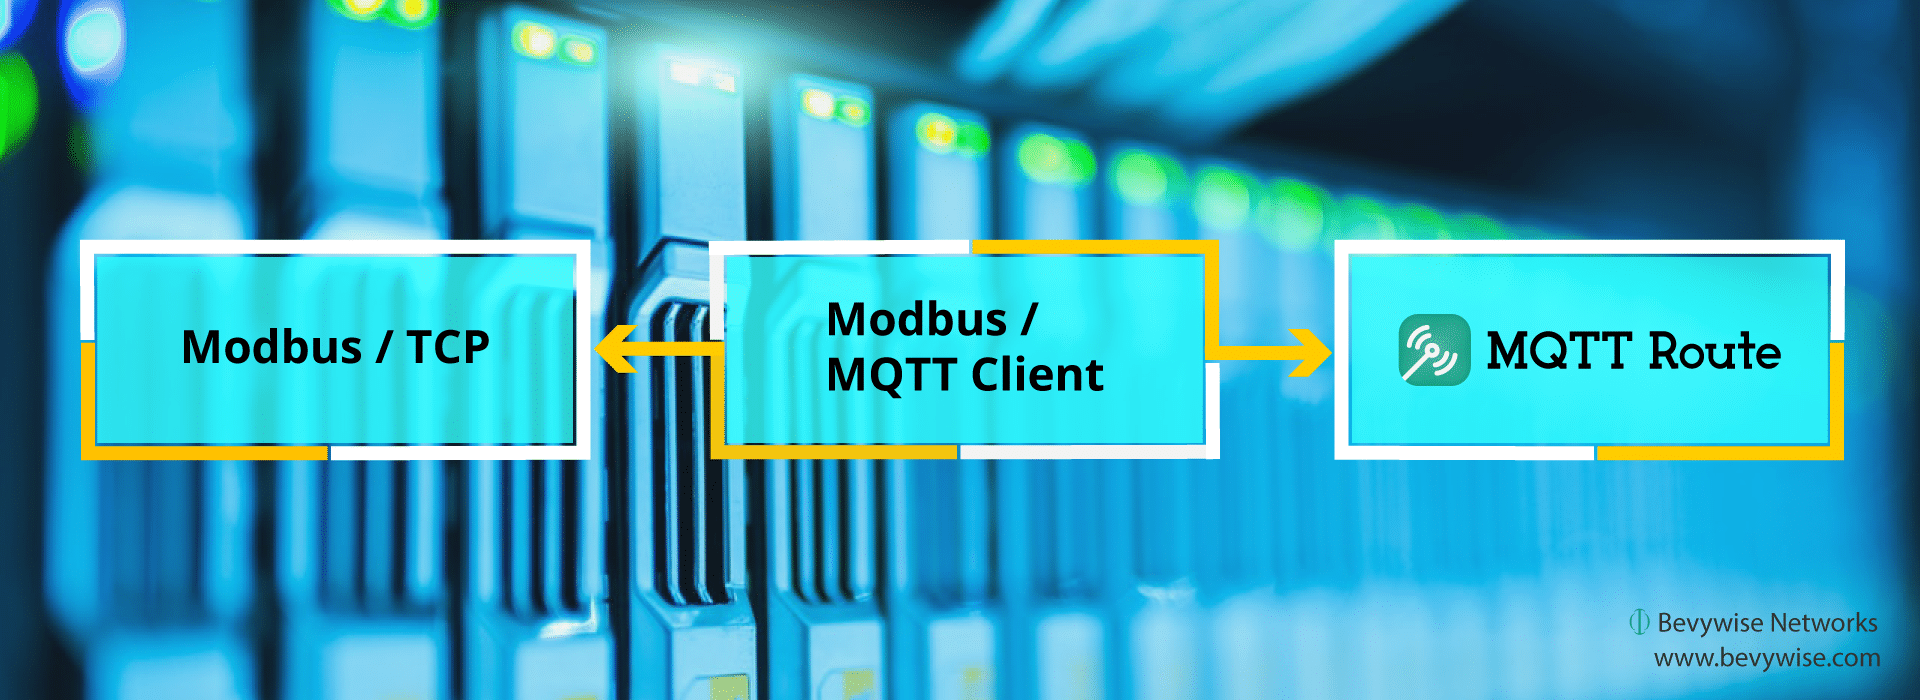 Modbus IoT Integration - Send Data to MQTT Broker - Bevywise